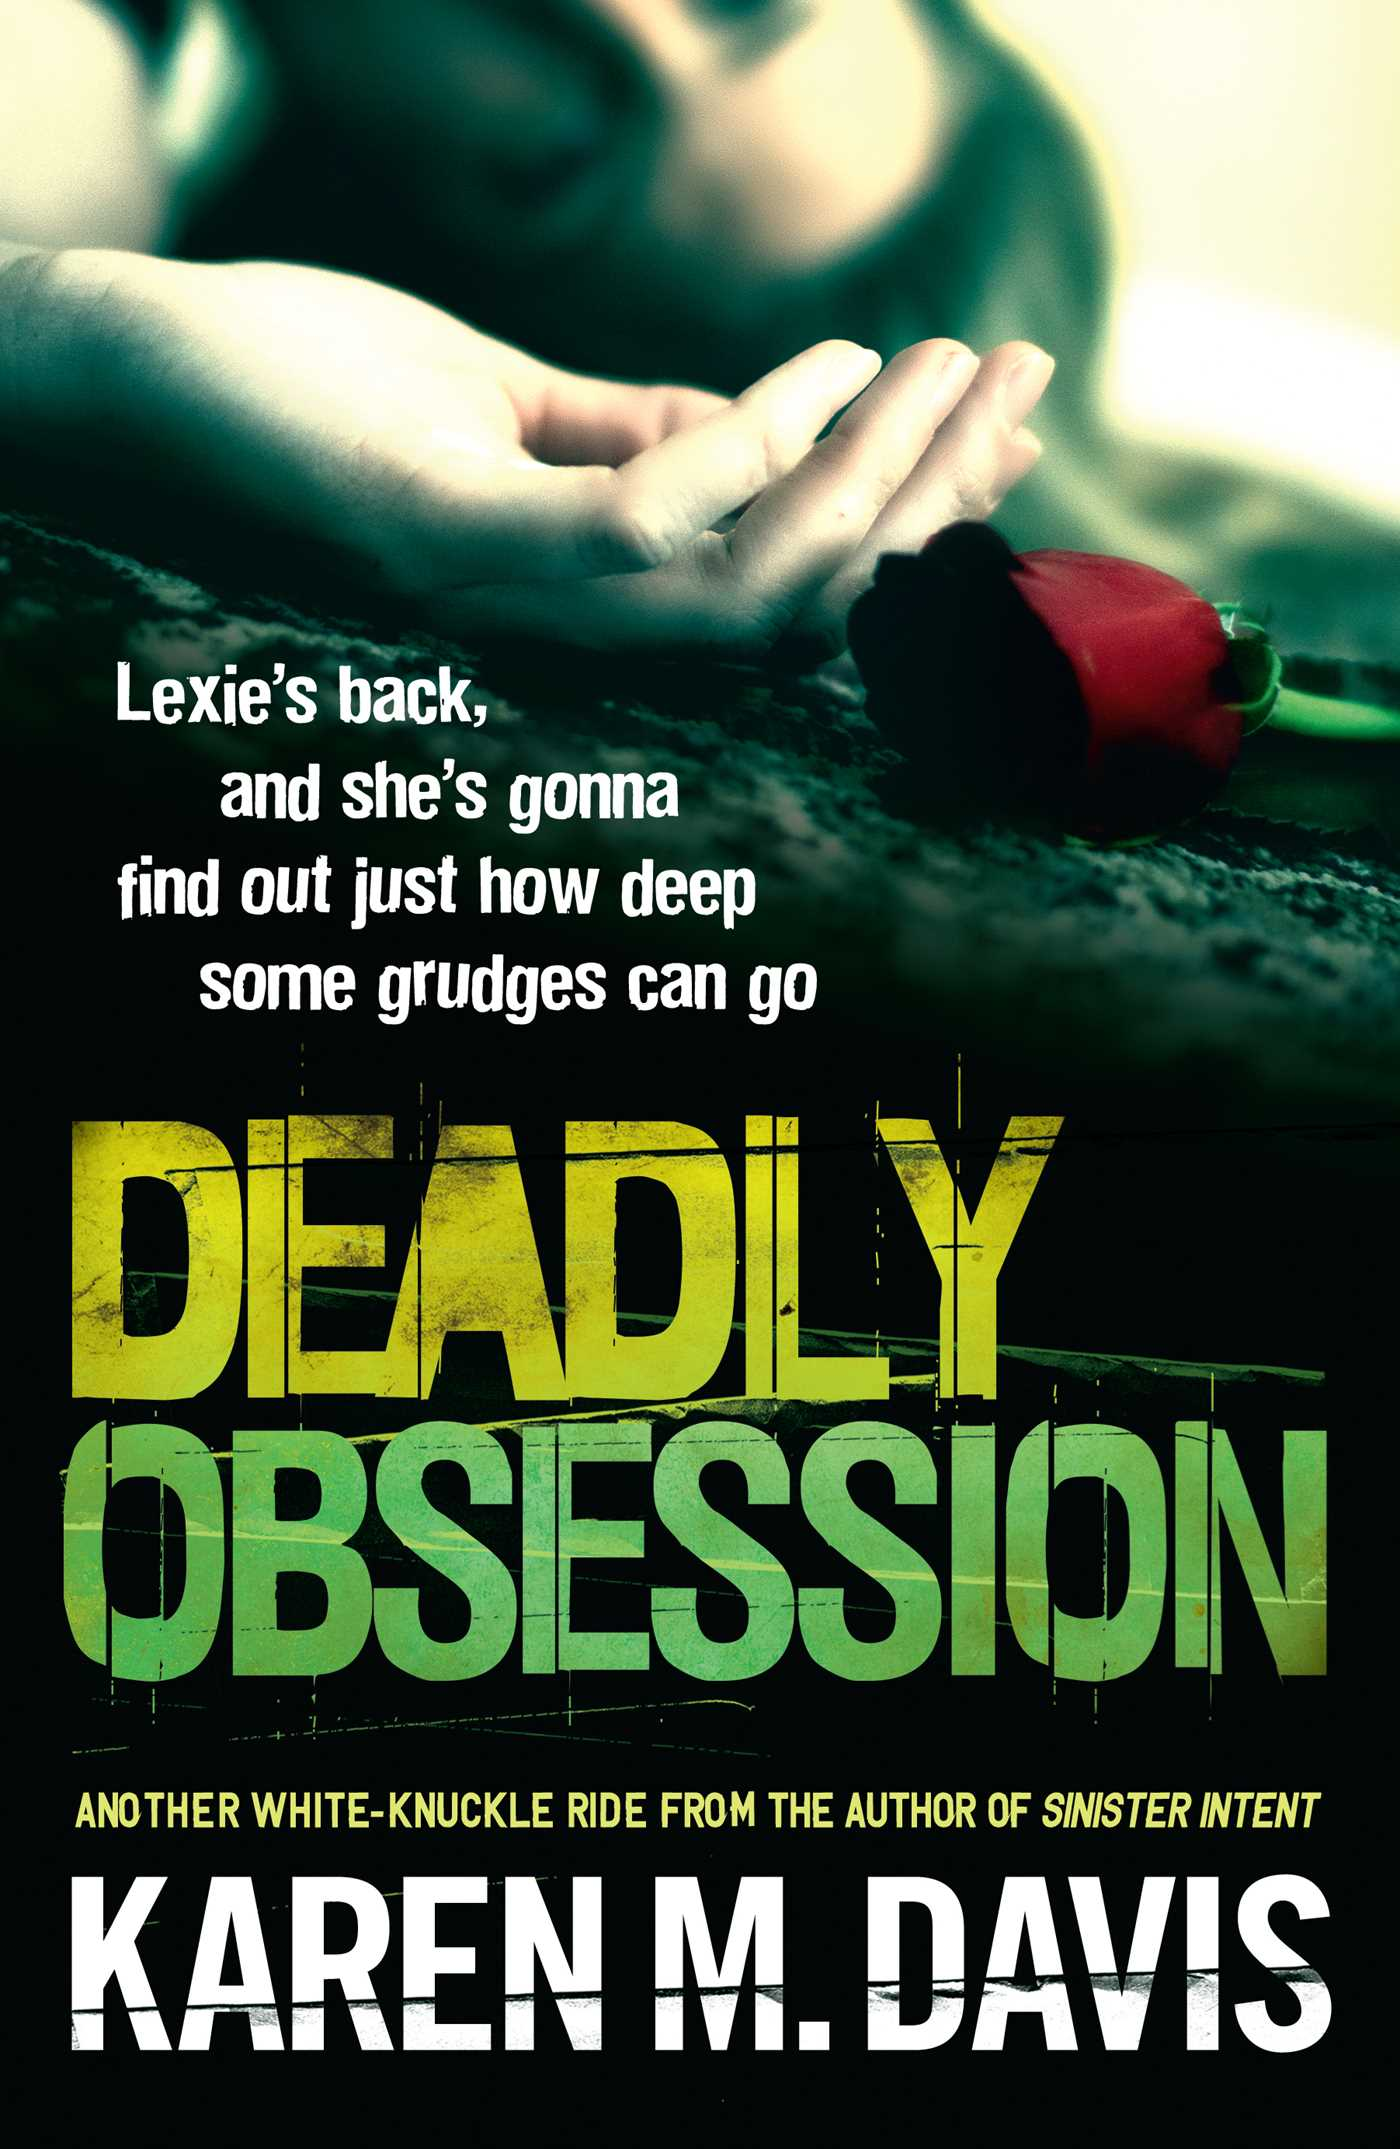 Deadly obsession 9781922052575 hr